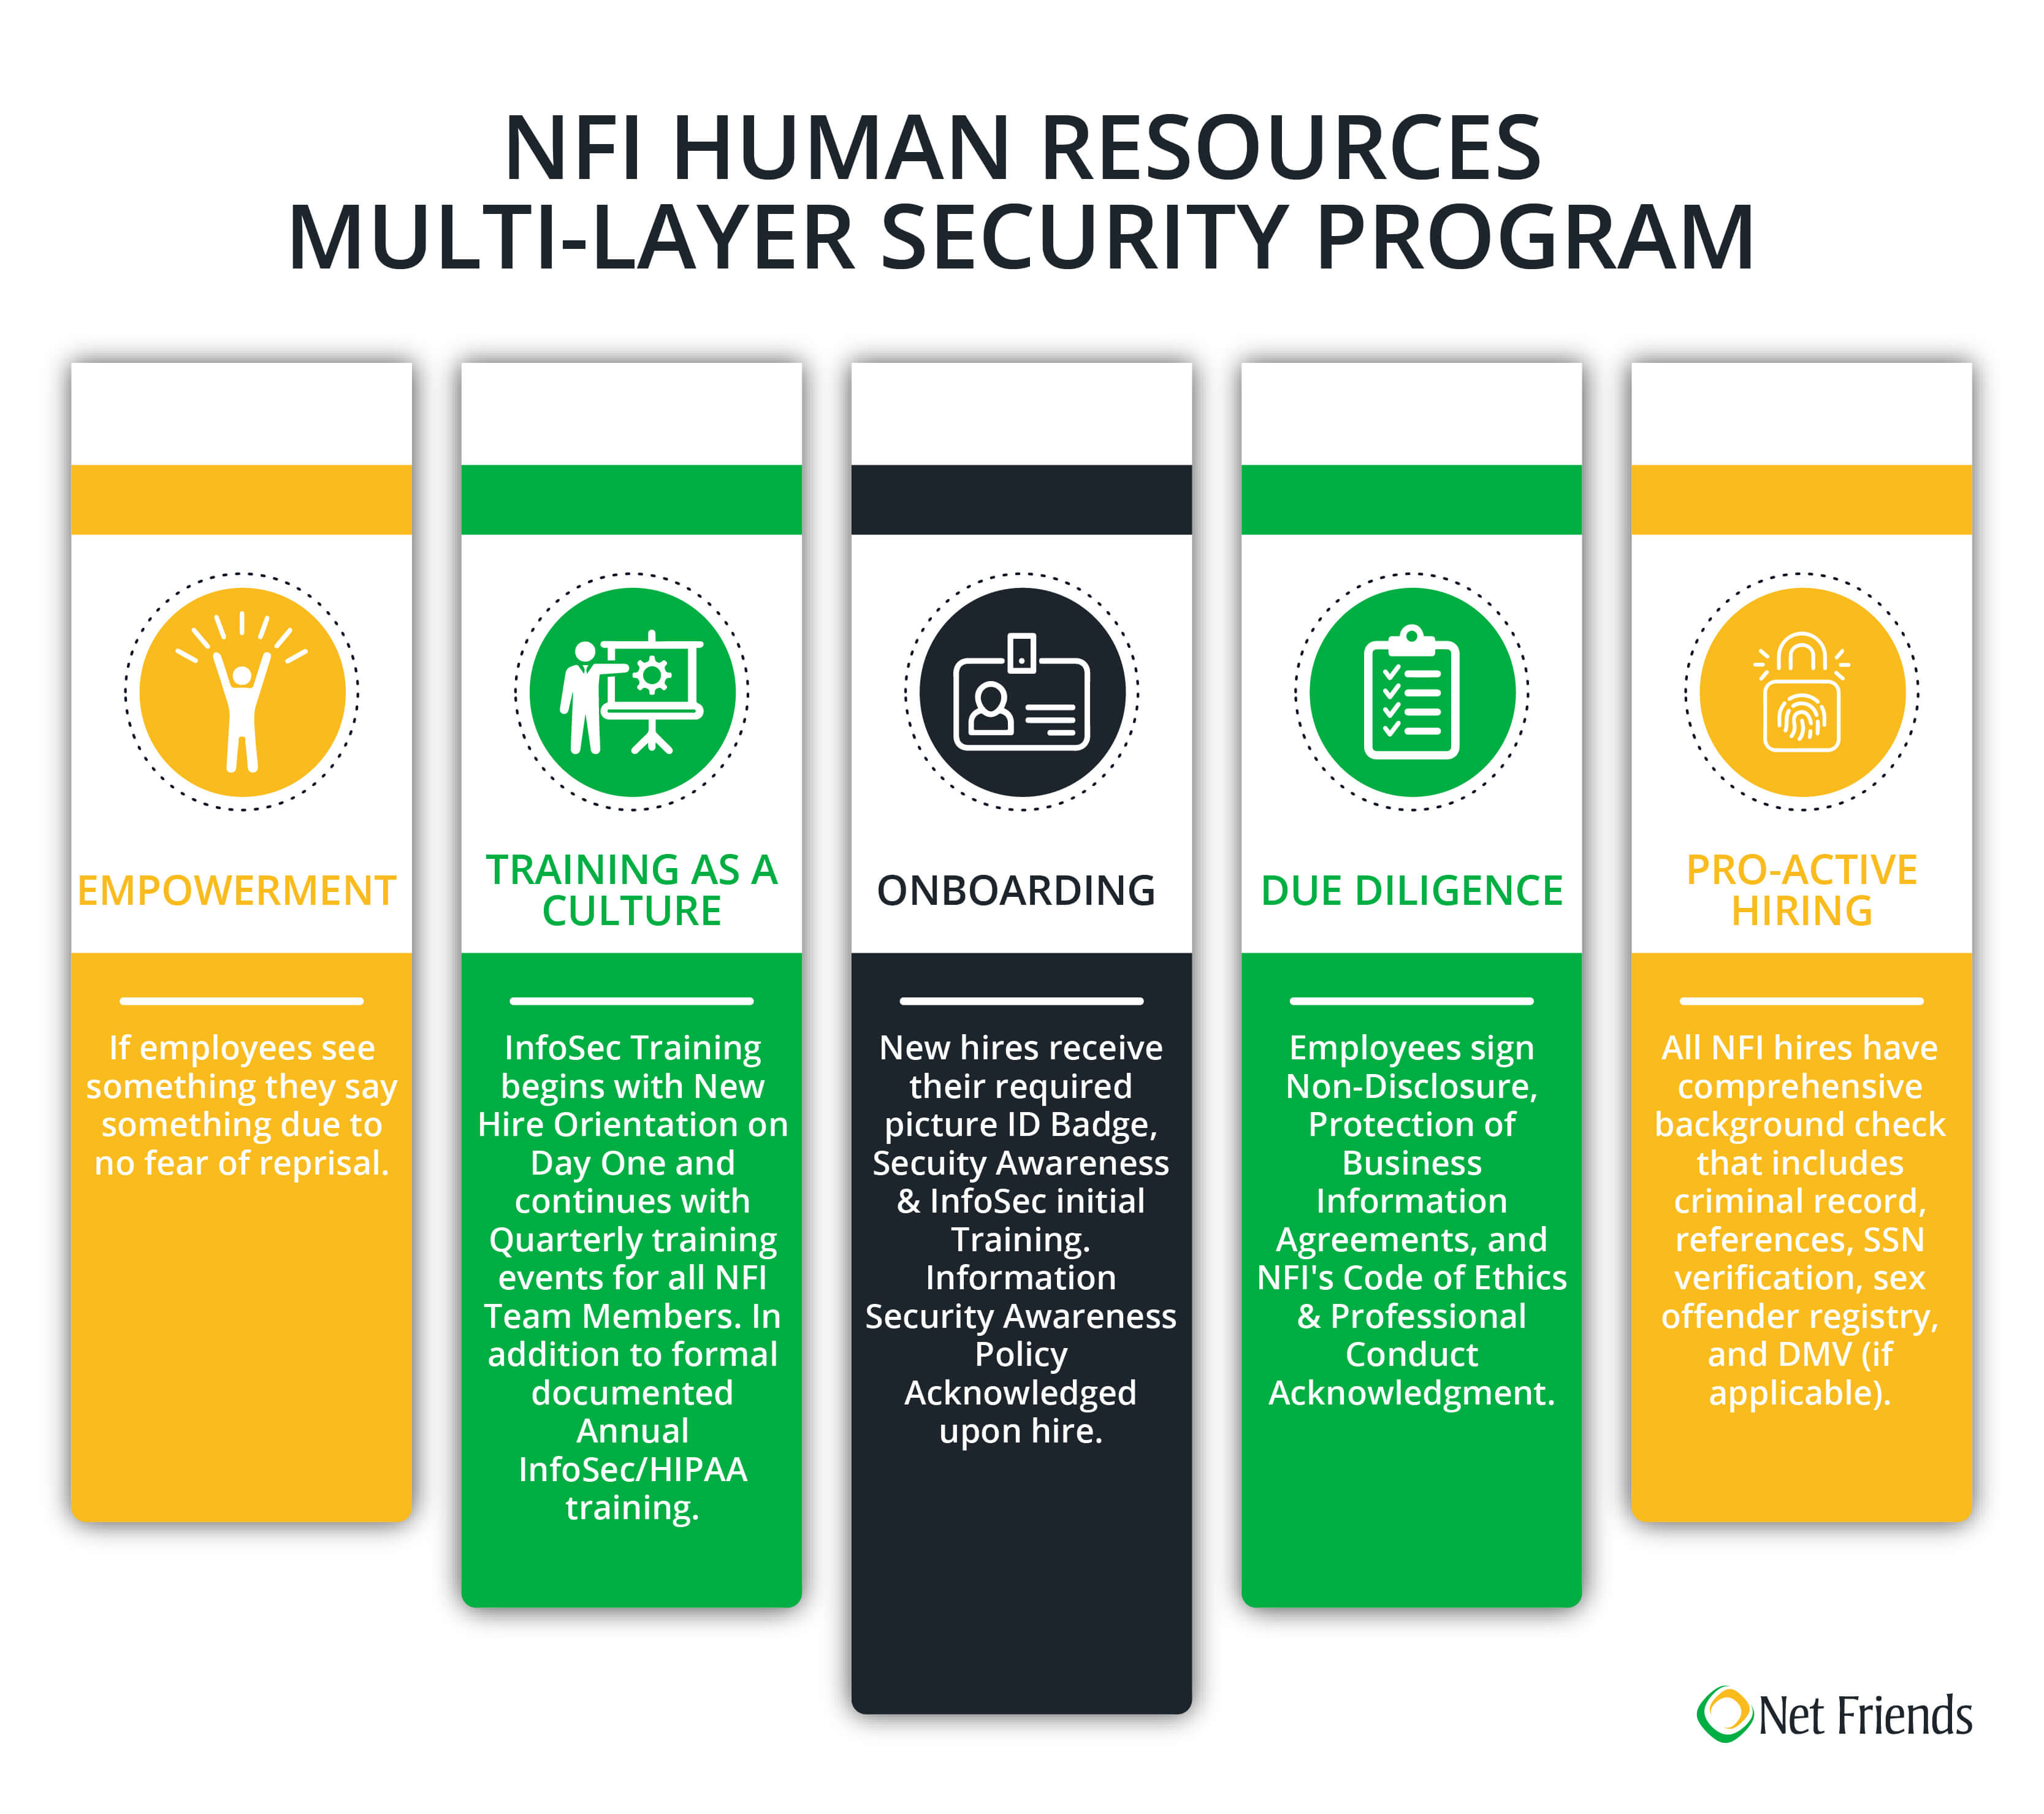 NFI Human Resources  Multi-layer Security Program info-graphic